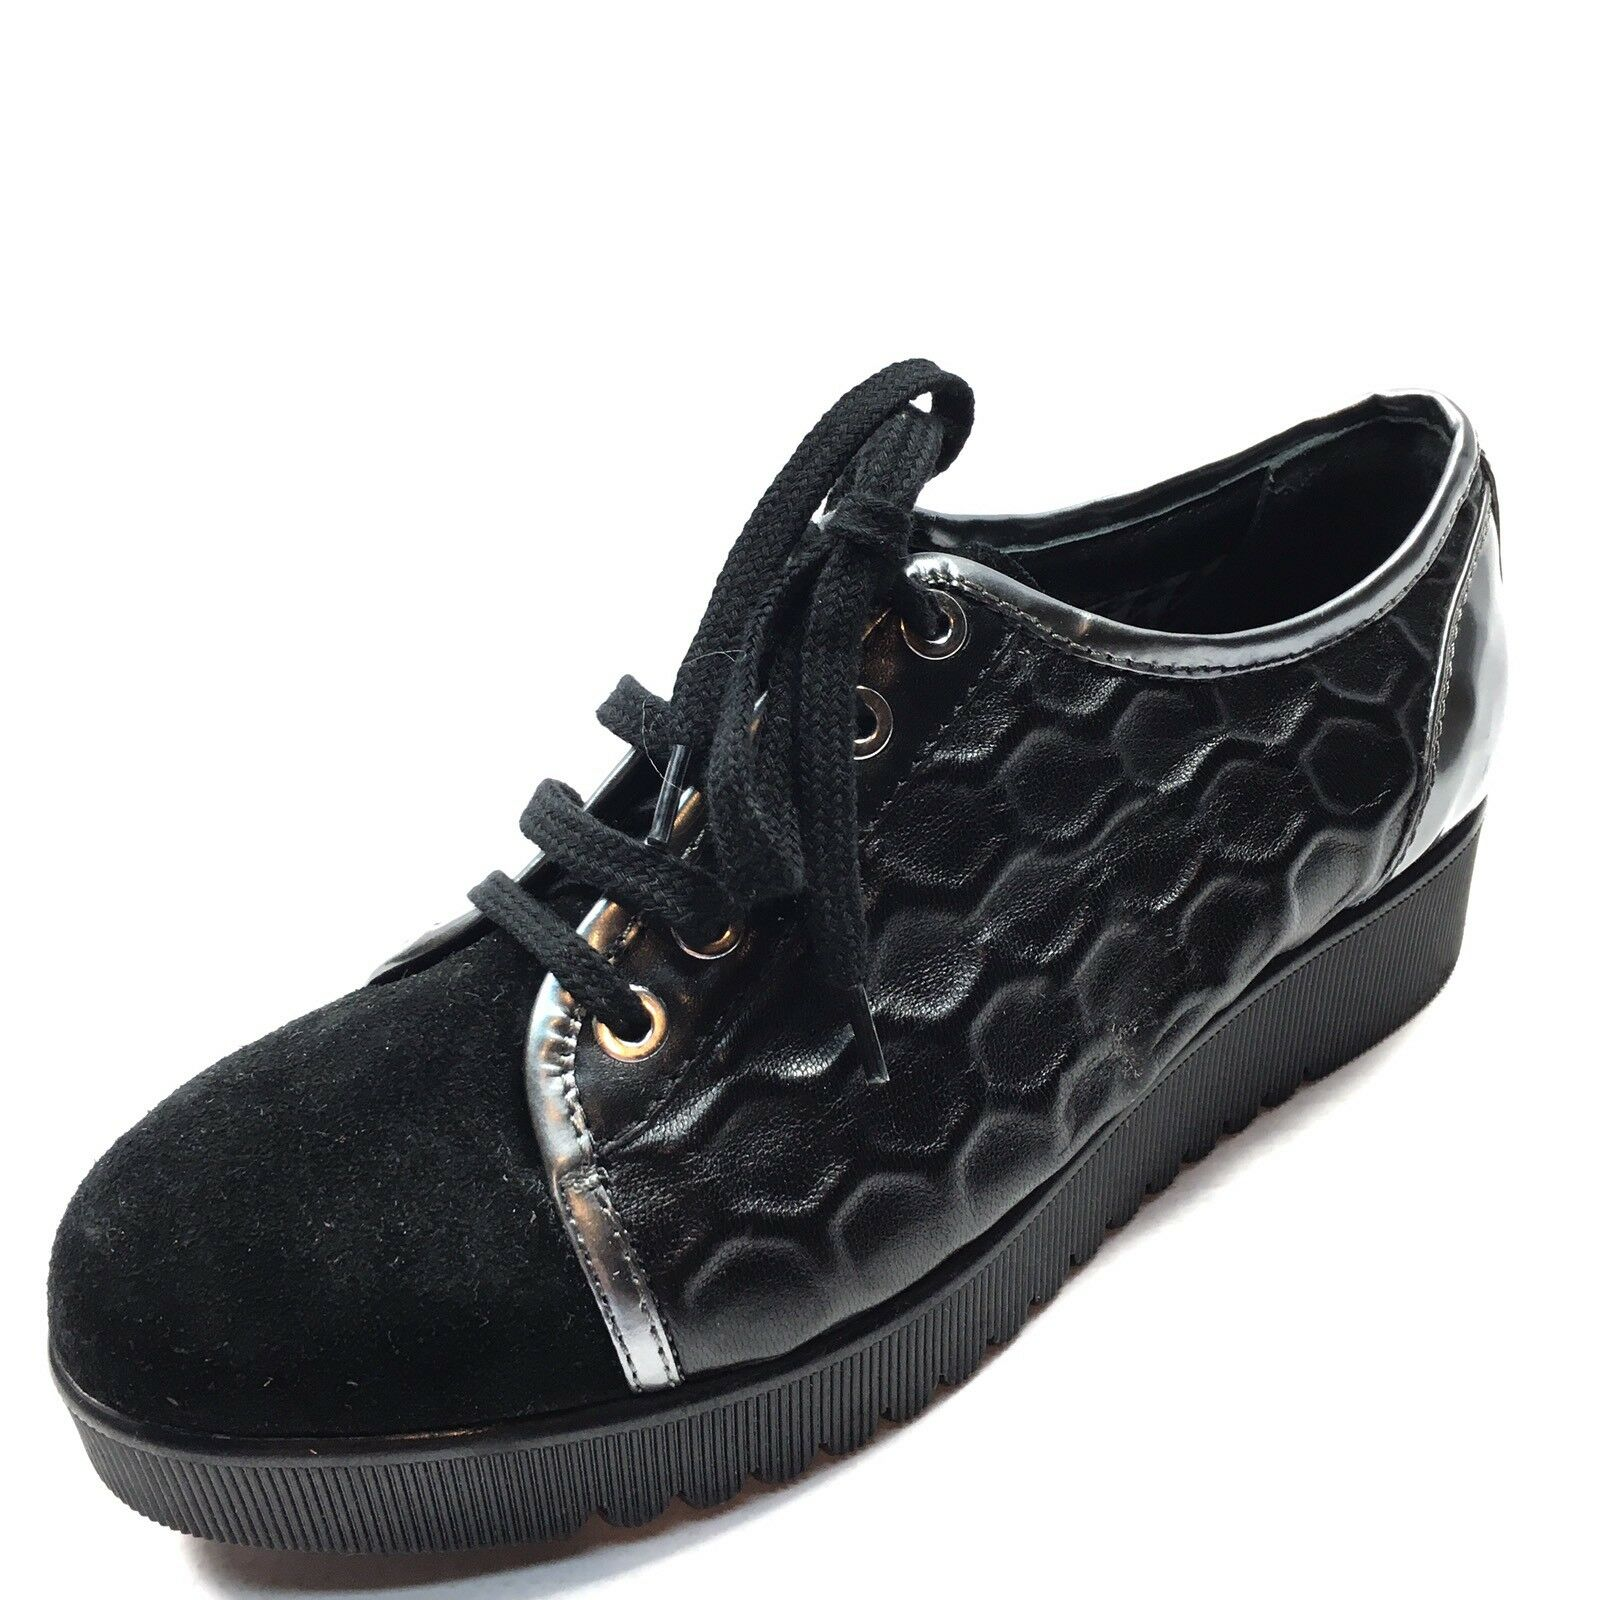 Aquatalia by Marvin K. Aida Black Leather Platform Oxfords Women's Size 5.5 M